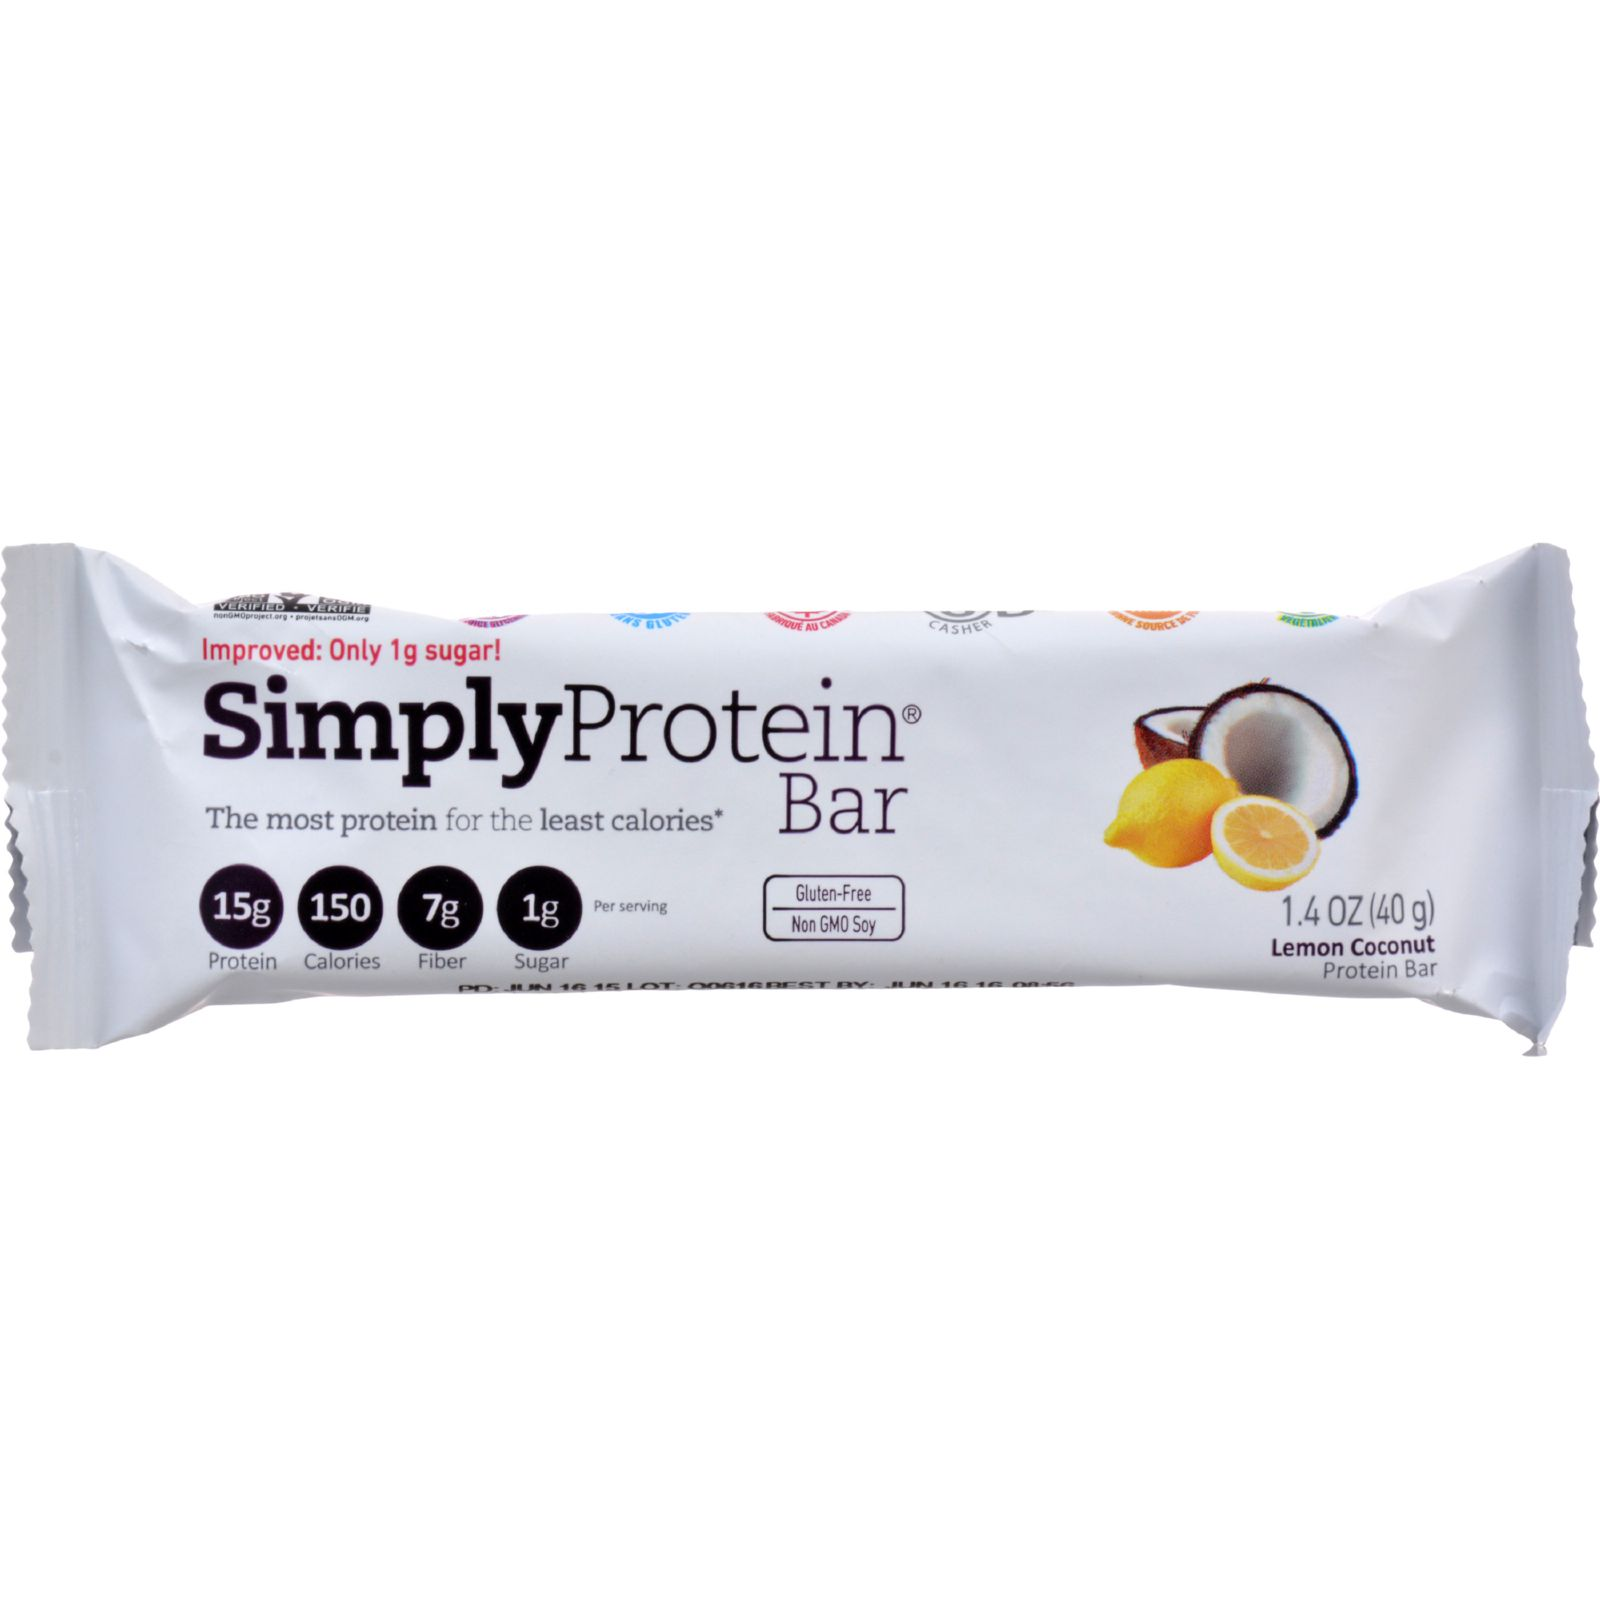 Simplyprotein Protein Bar - Lemon Cconut - 1.41 Oz - Case Of 12